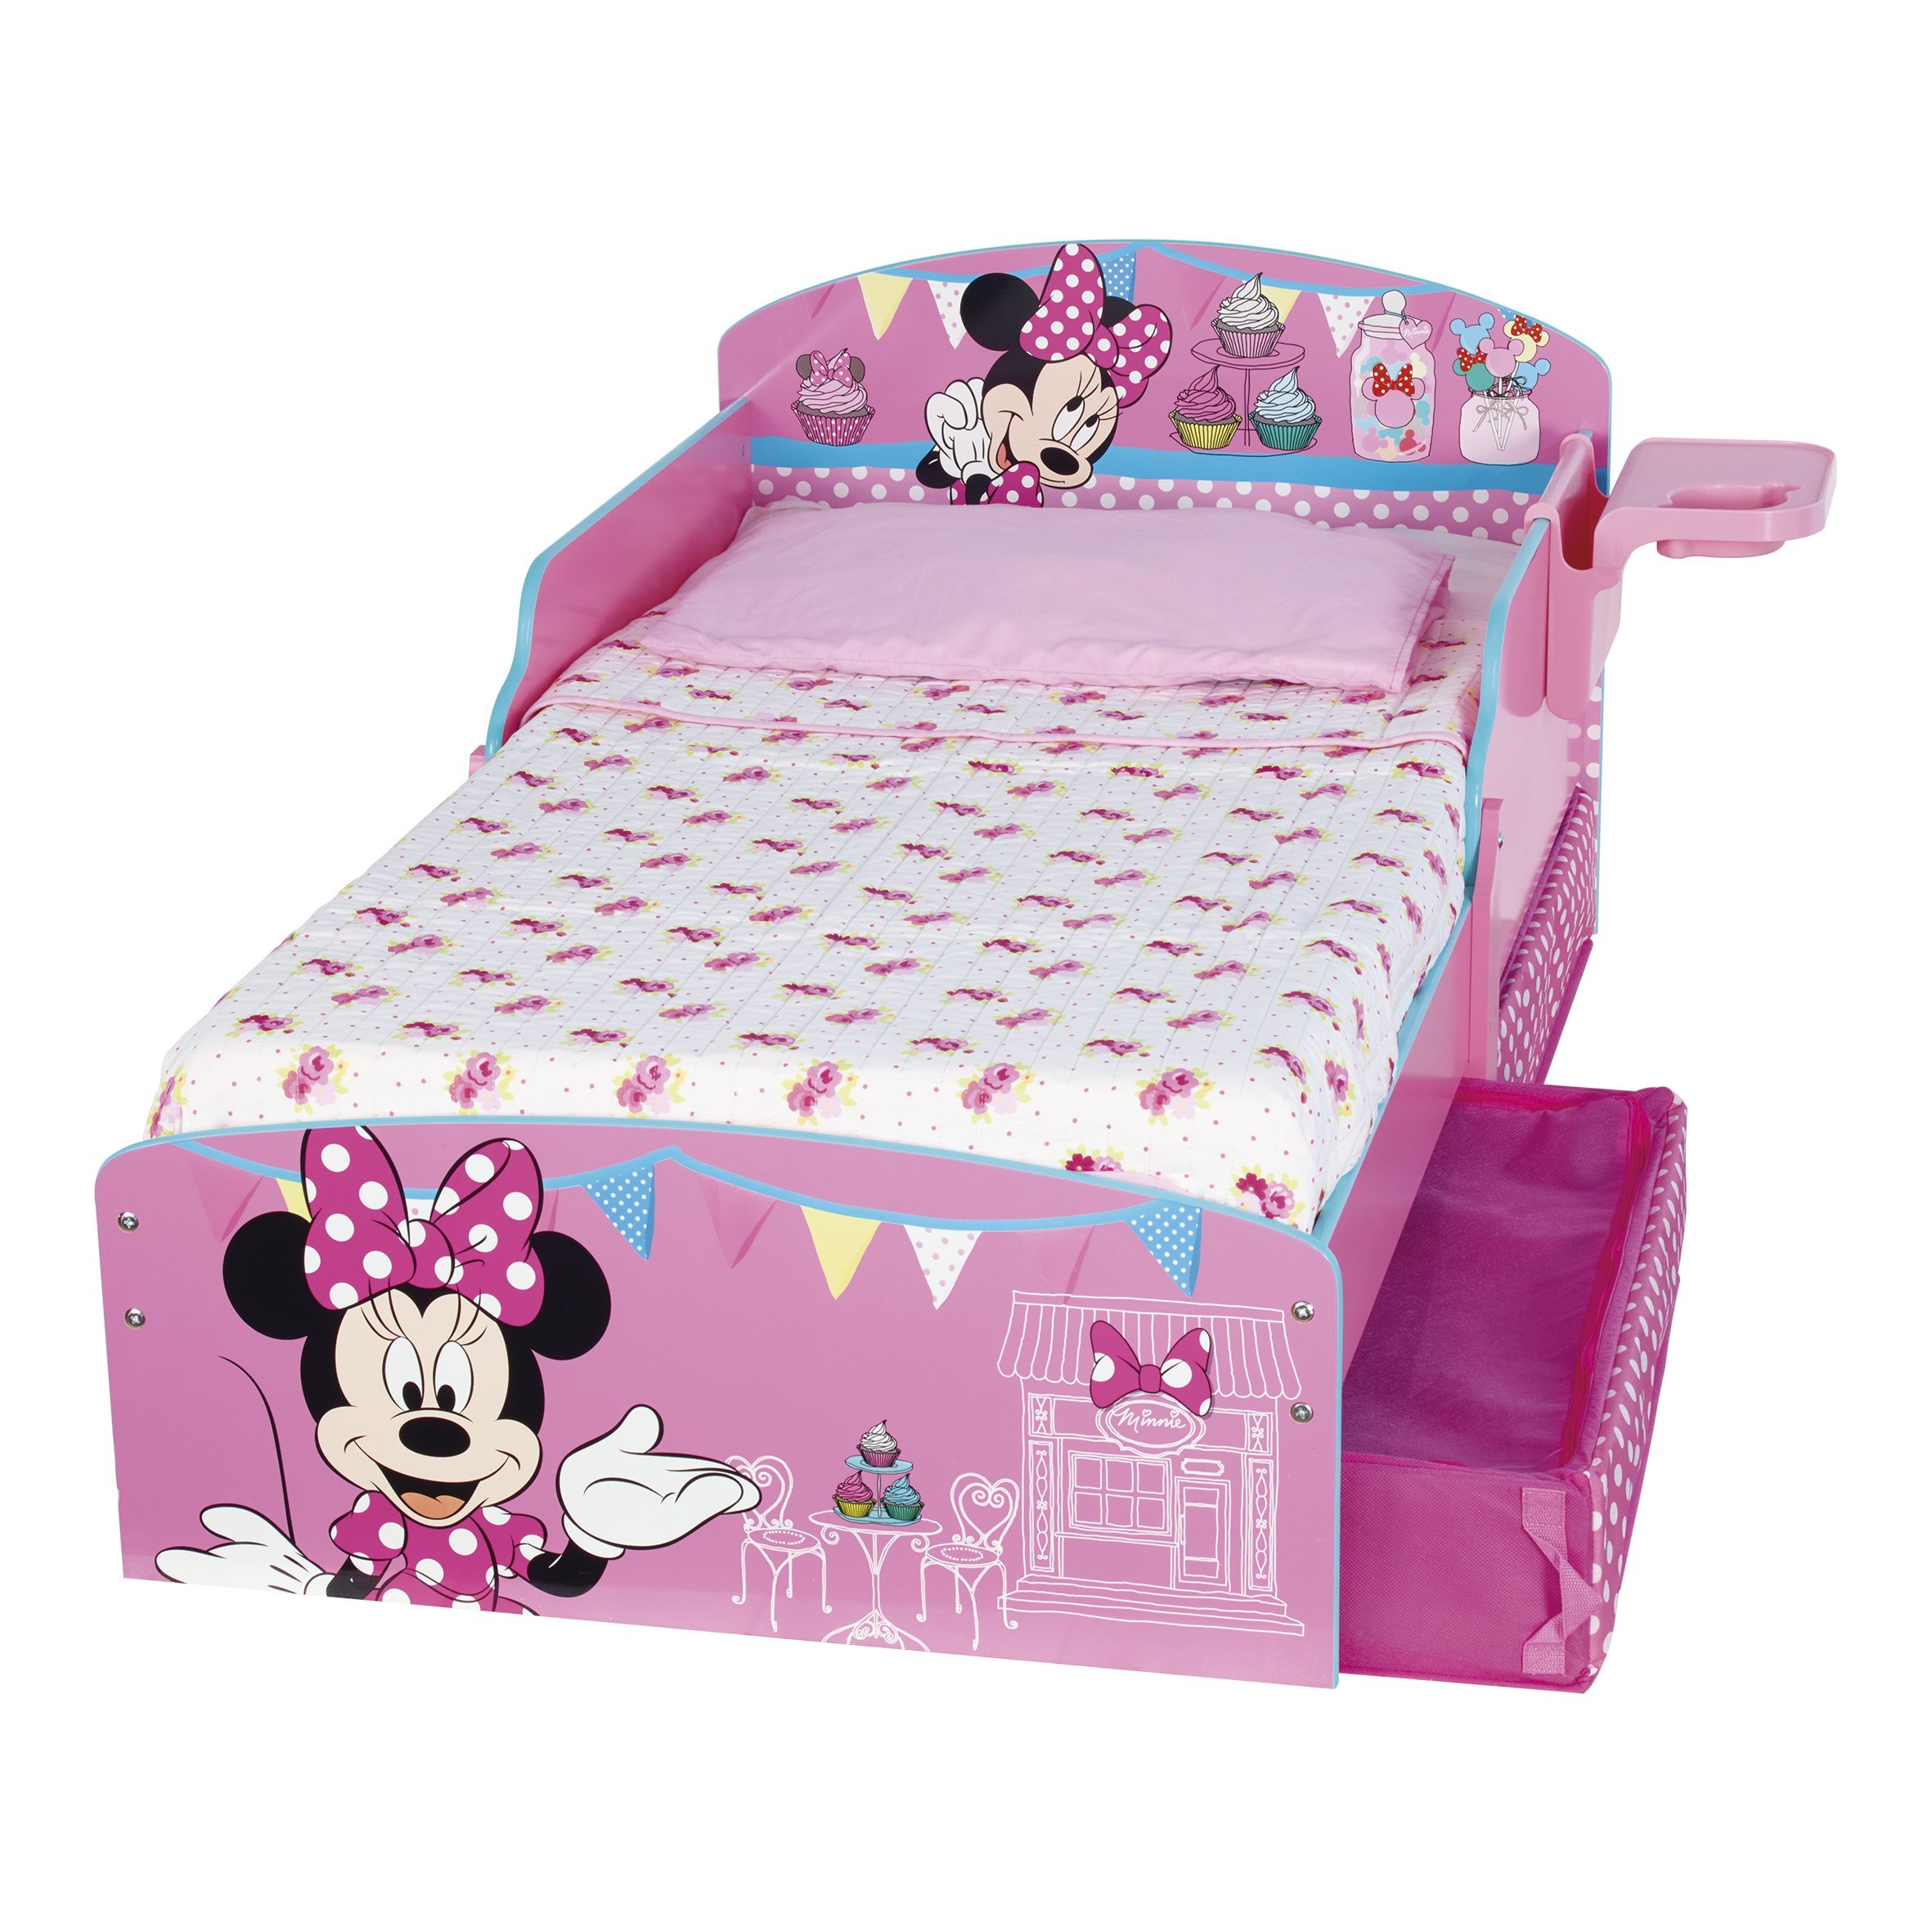 Disney Minnie Mouse Toddler Bed Underbed Storage And Shelf